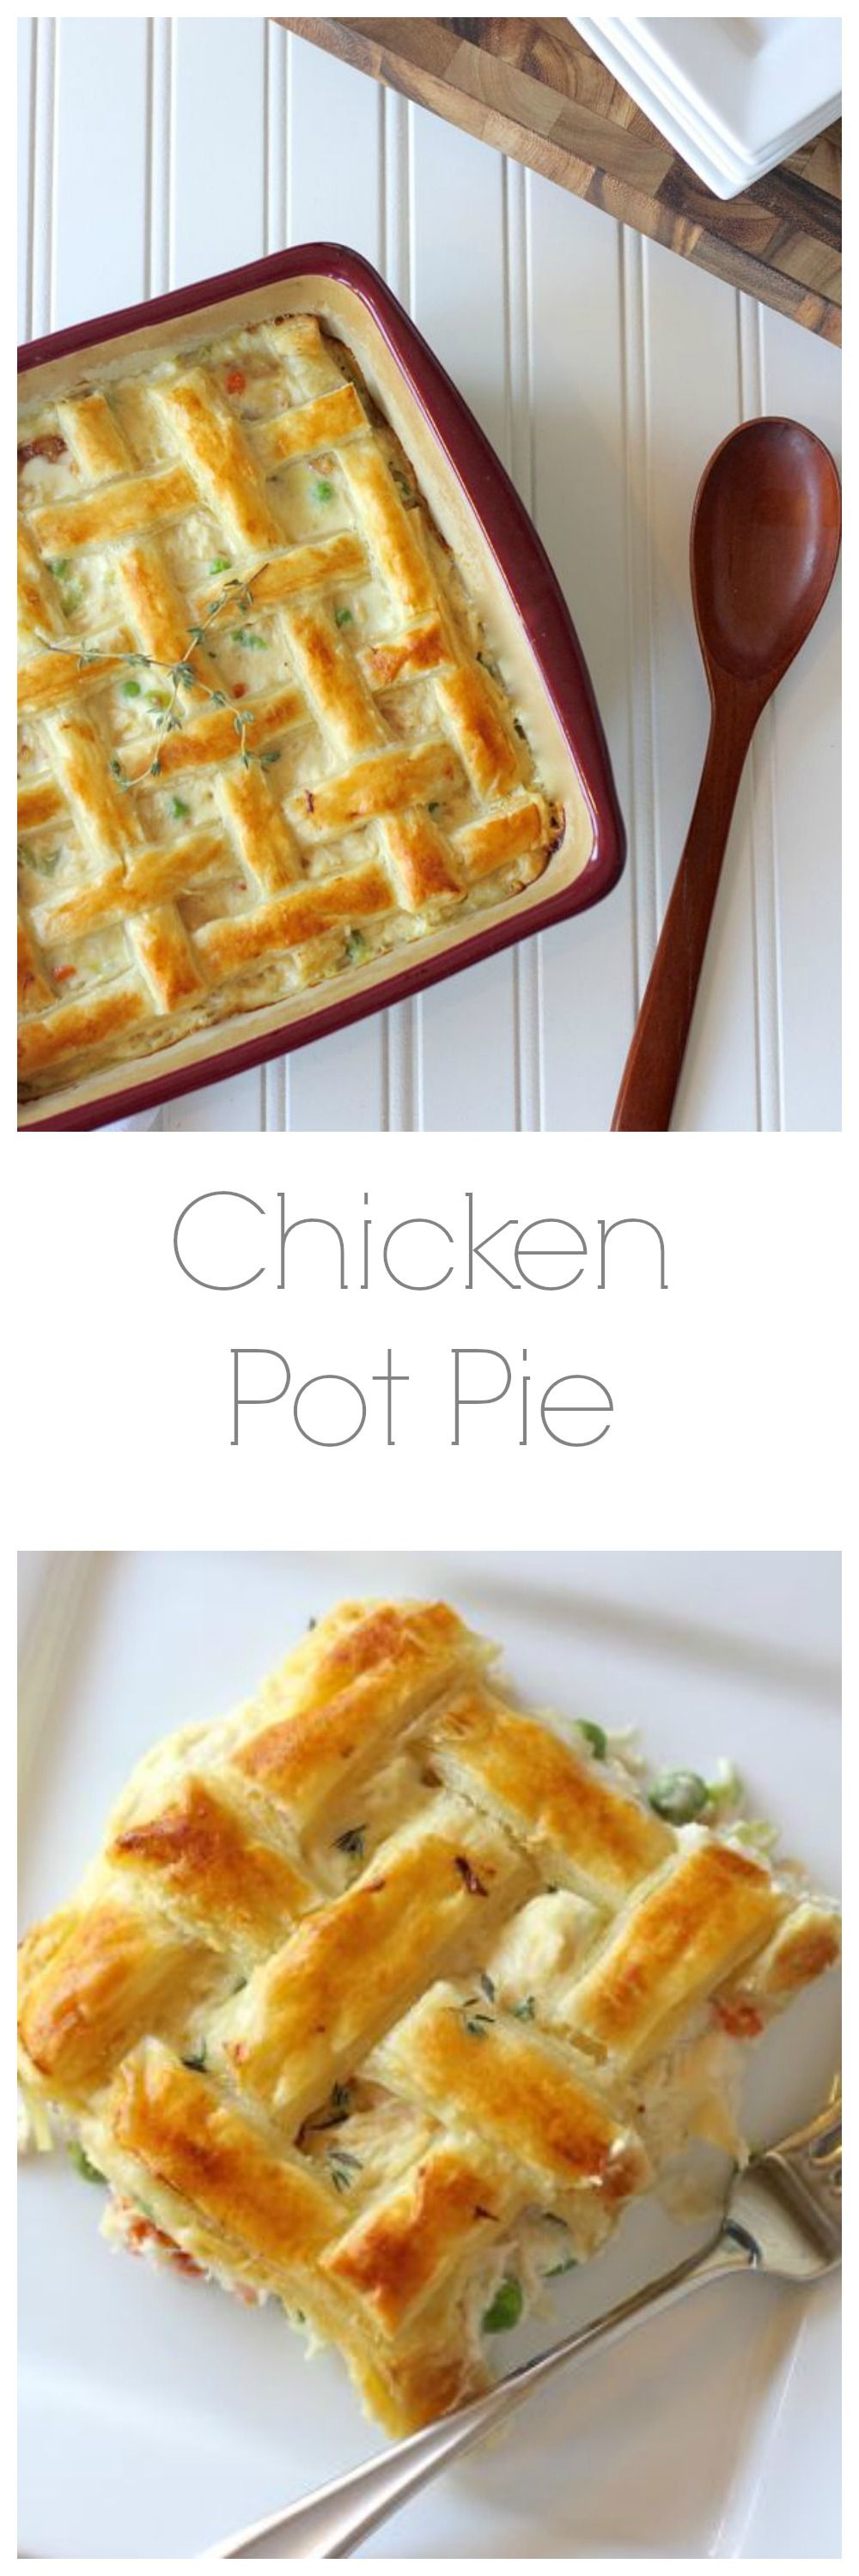 Food And Drink: Chicken Pot Pie   Lovely Little Kitchen